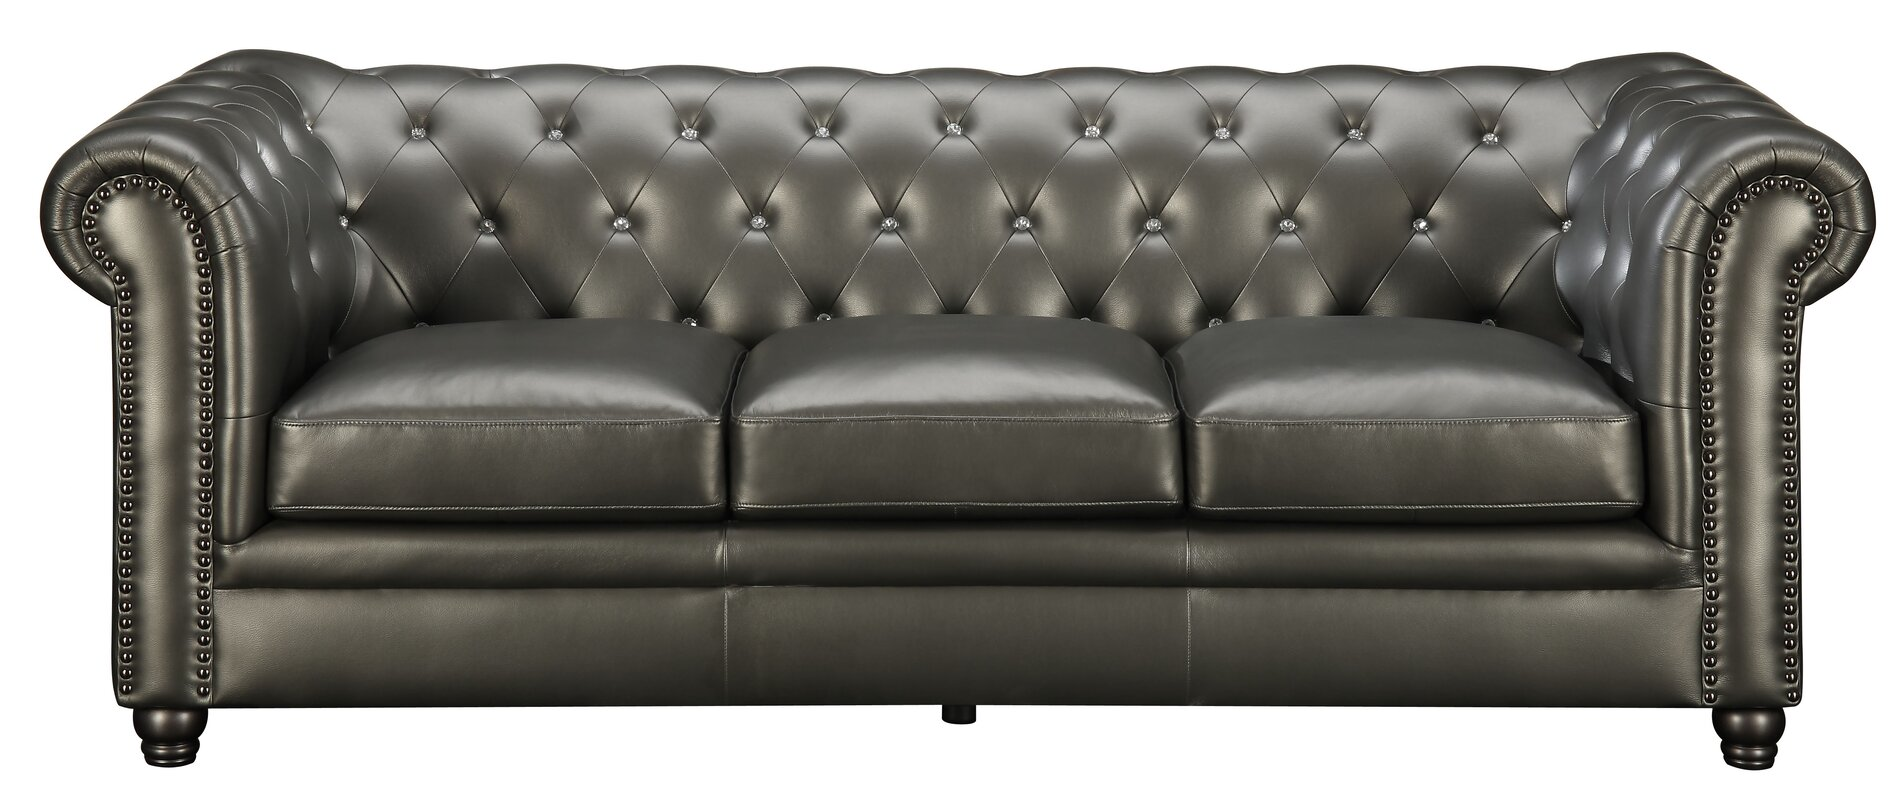 High Quality Vanallen Leather Chesterfield Sofa